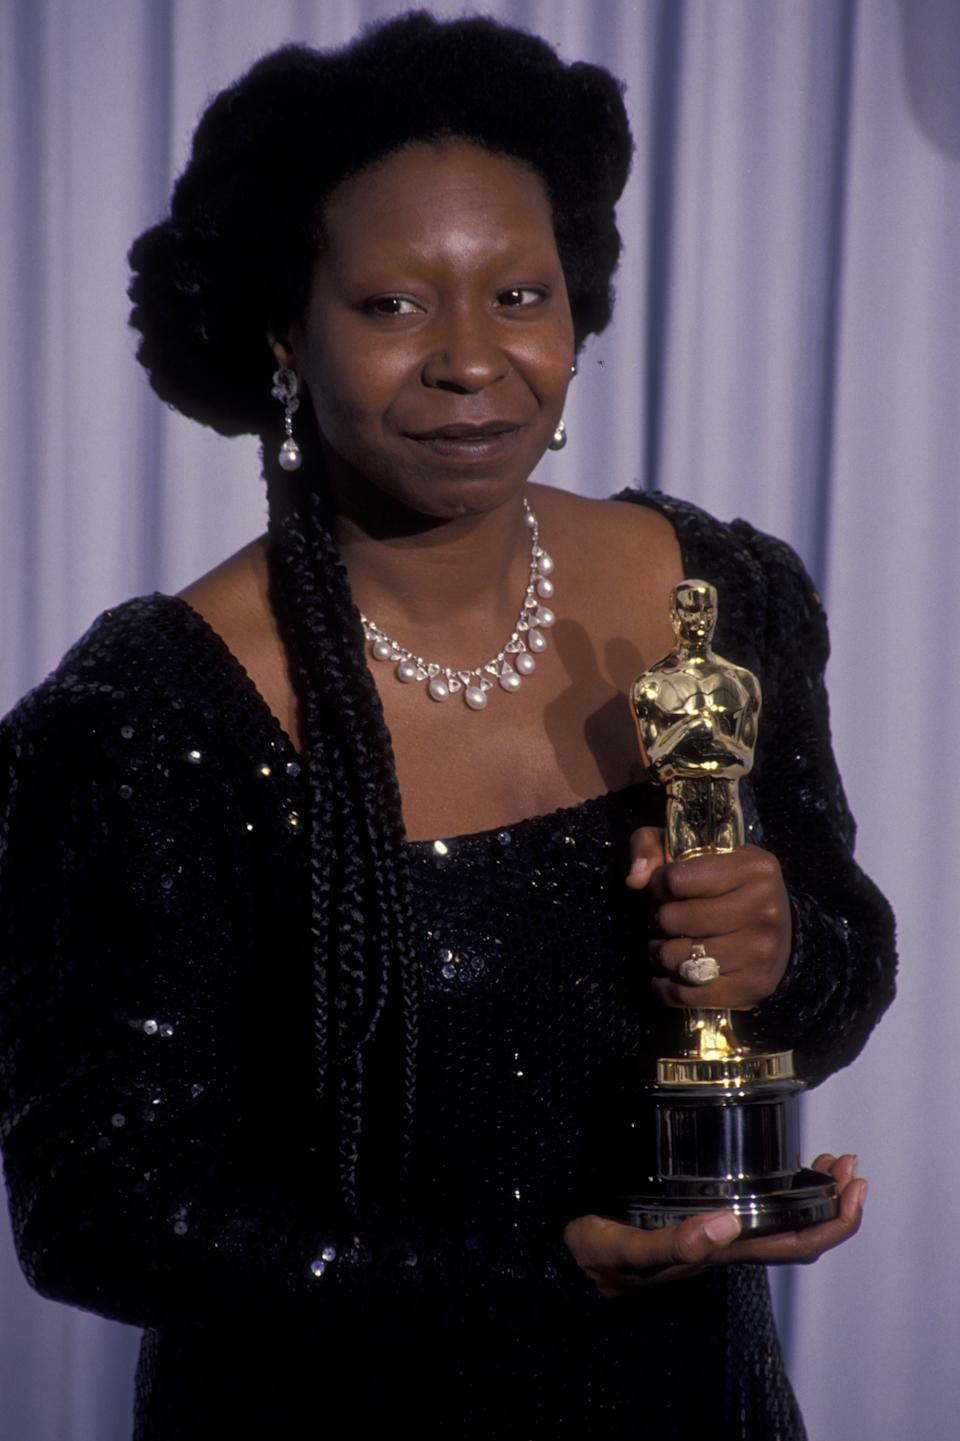 LOS ANGELES - MARCH 25:  Actress Whoopi Goldberg attends 63rd Annual Academy Awards on March 25, 1991 at the Shrine Auditorium in Los Angeles, California. (Photo by Ron Galella, Ltd./Ron Galella Collection via Getty Images)